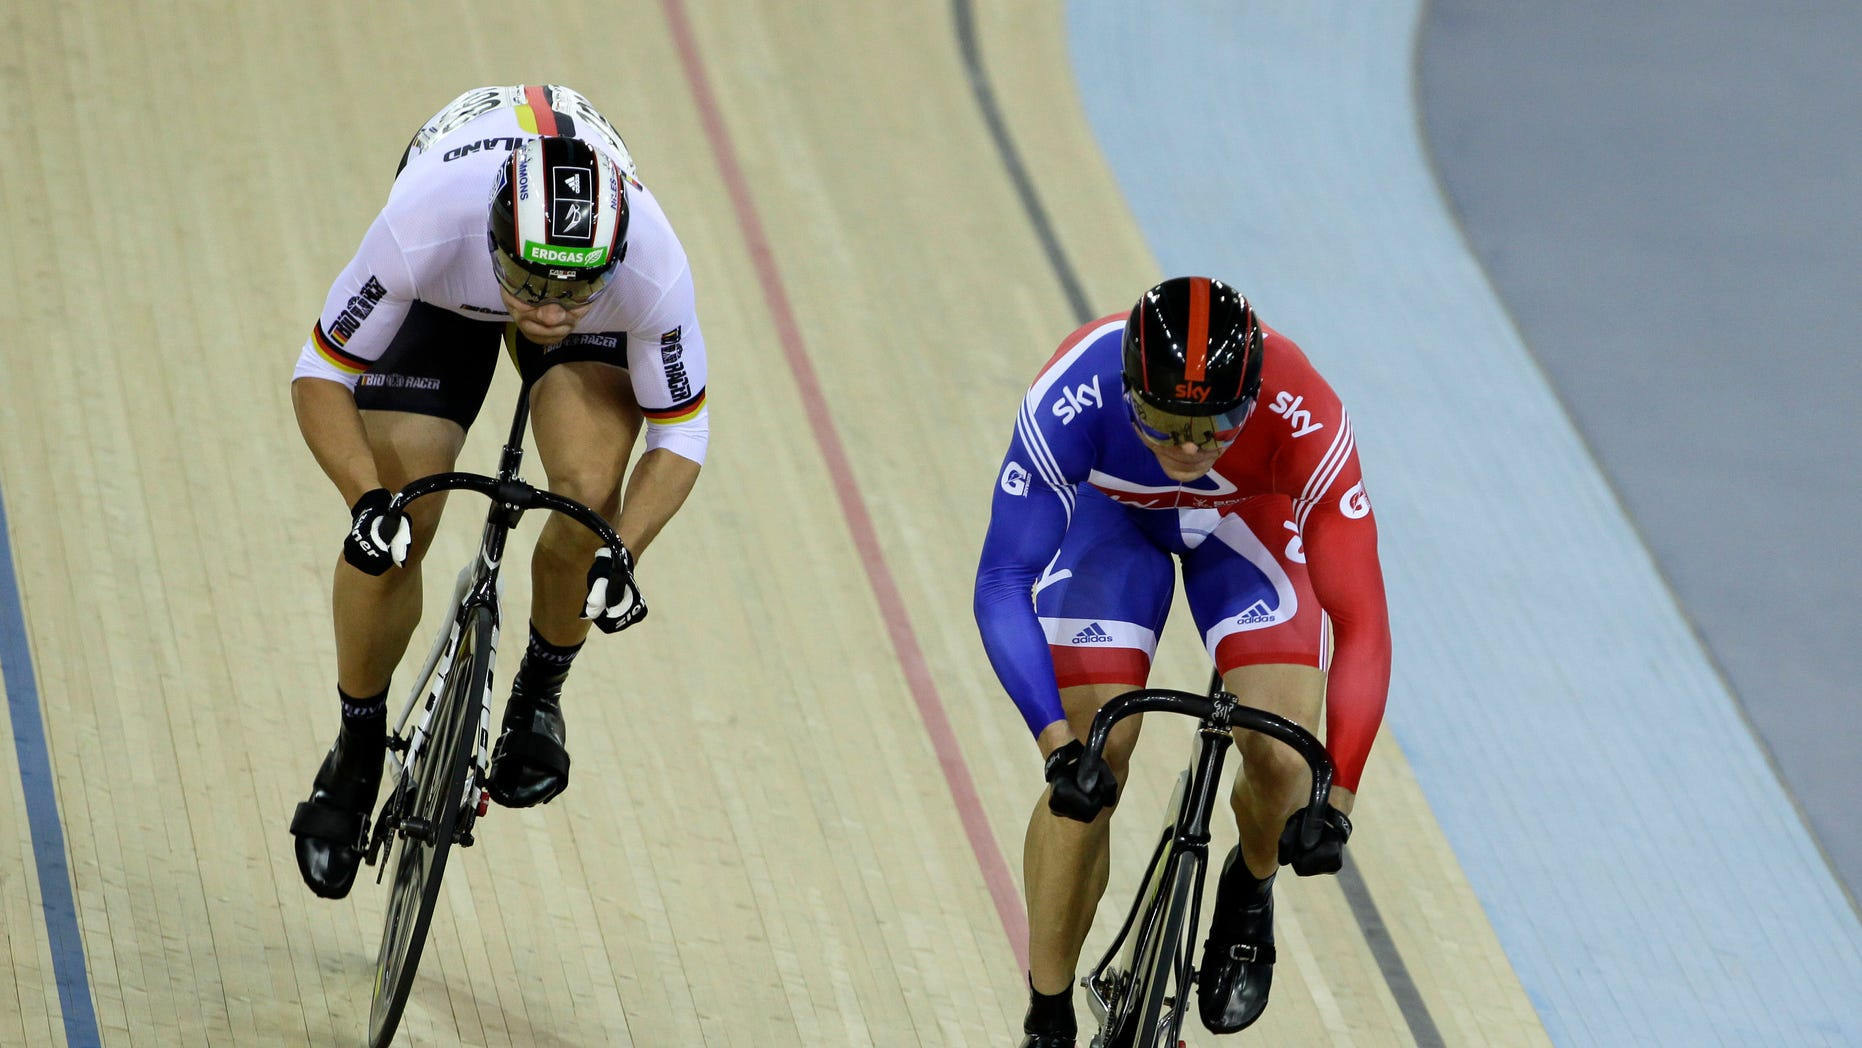 Feb. 19, 2012: In this file photo, gold medalist Britain's Chris Hoy, right, races silver medalist Germany's Maximilian Levy in their men's sprint race final during the World Cup track cycling meeting at the London 2012 Olympic Velodrome at the Olympic Park in London.